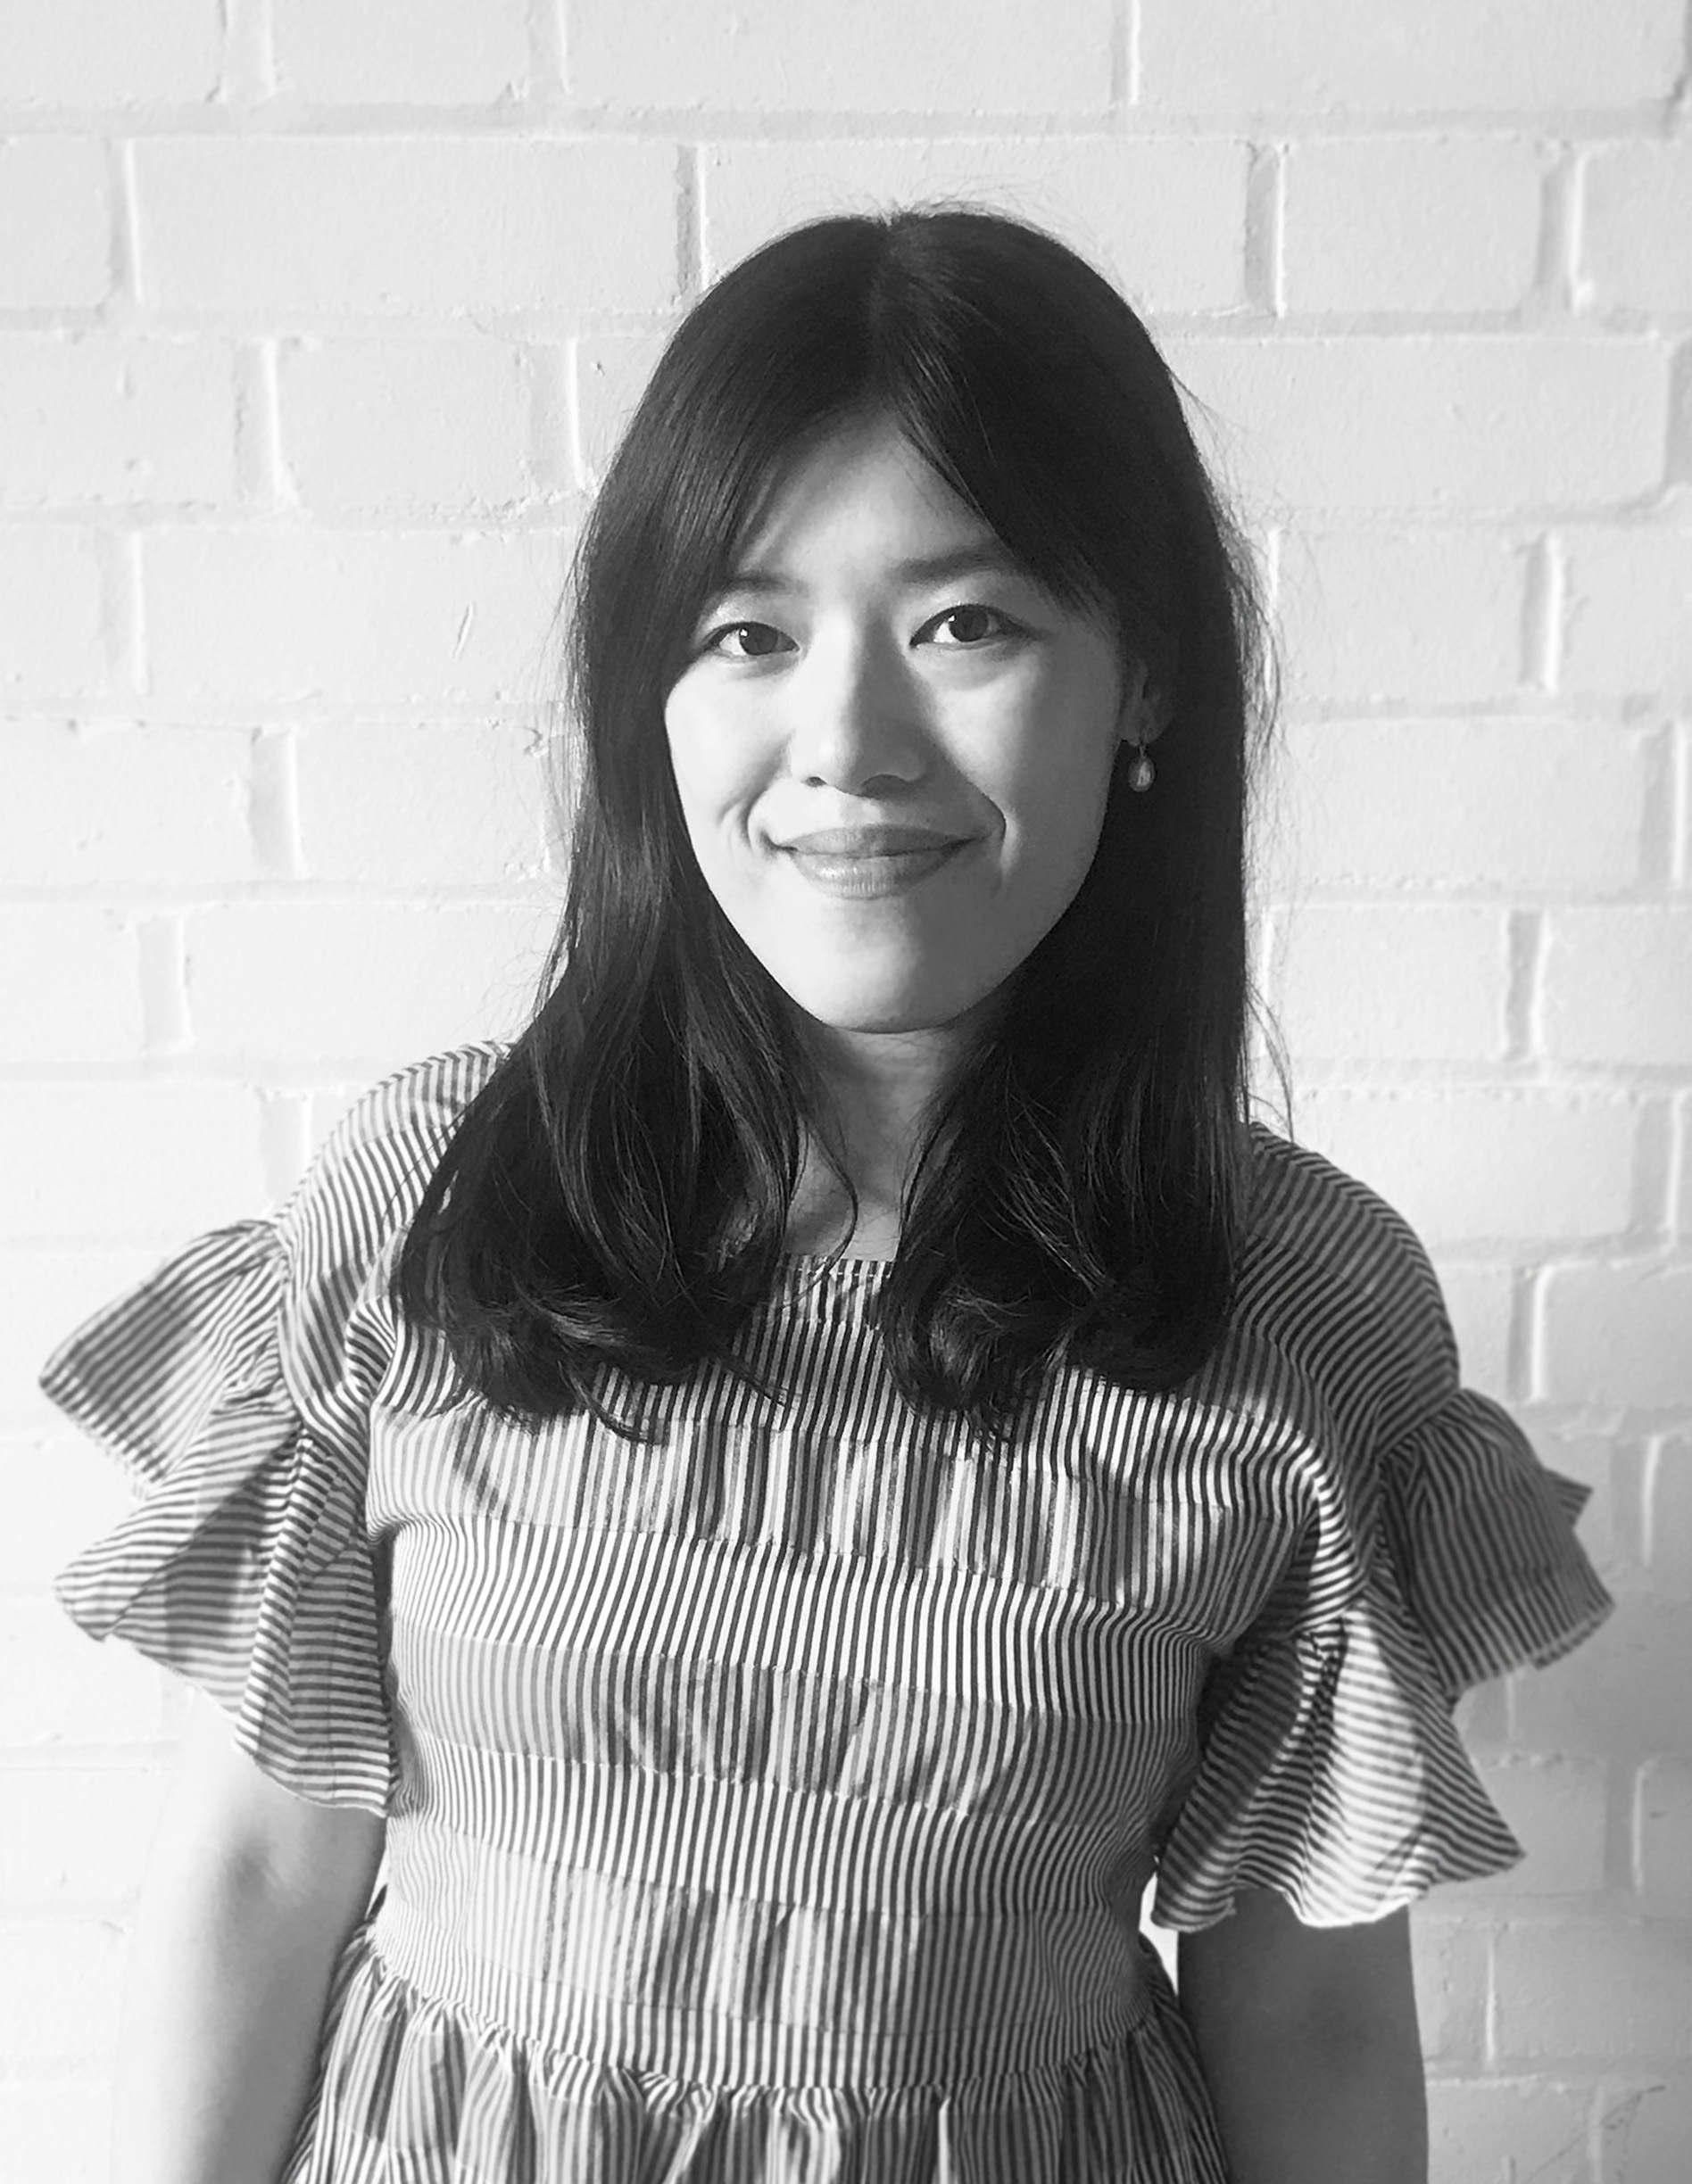 Caroline chen, communications designer   Caroline has worked in different projects worldwide since completing her Master's degree in Glasgow School of Art. Her FIVE years' experience includes publishing, media, fashion industries, during which time she has gained business project developments.  She enjoys working closely with clients and the design team, sharing ideas to get the best out of projects. Outside work Caroline loves yoga and travelling as well as making handmade crafts, painting and embracing European culture.  QUALIFICATIONS:  2012-2013 MA COMMUNICATION DESIGN, THE GLASGOW SCHOOL OF ART, UNIVERSITY OF GLASGOW IN GLASGOW, SCOTLAND  2008-2011 BA GRAPHIC COMMUNICATIONS AND DIGITAL PUBLISHING, University, UNIVERSITY OF SHIH HSIN IN TAIPEI CITY, TAIWAN   linkedin  .  email caroline